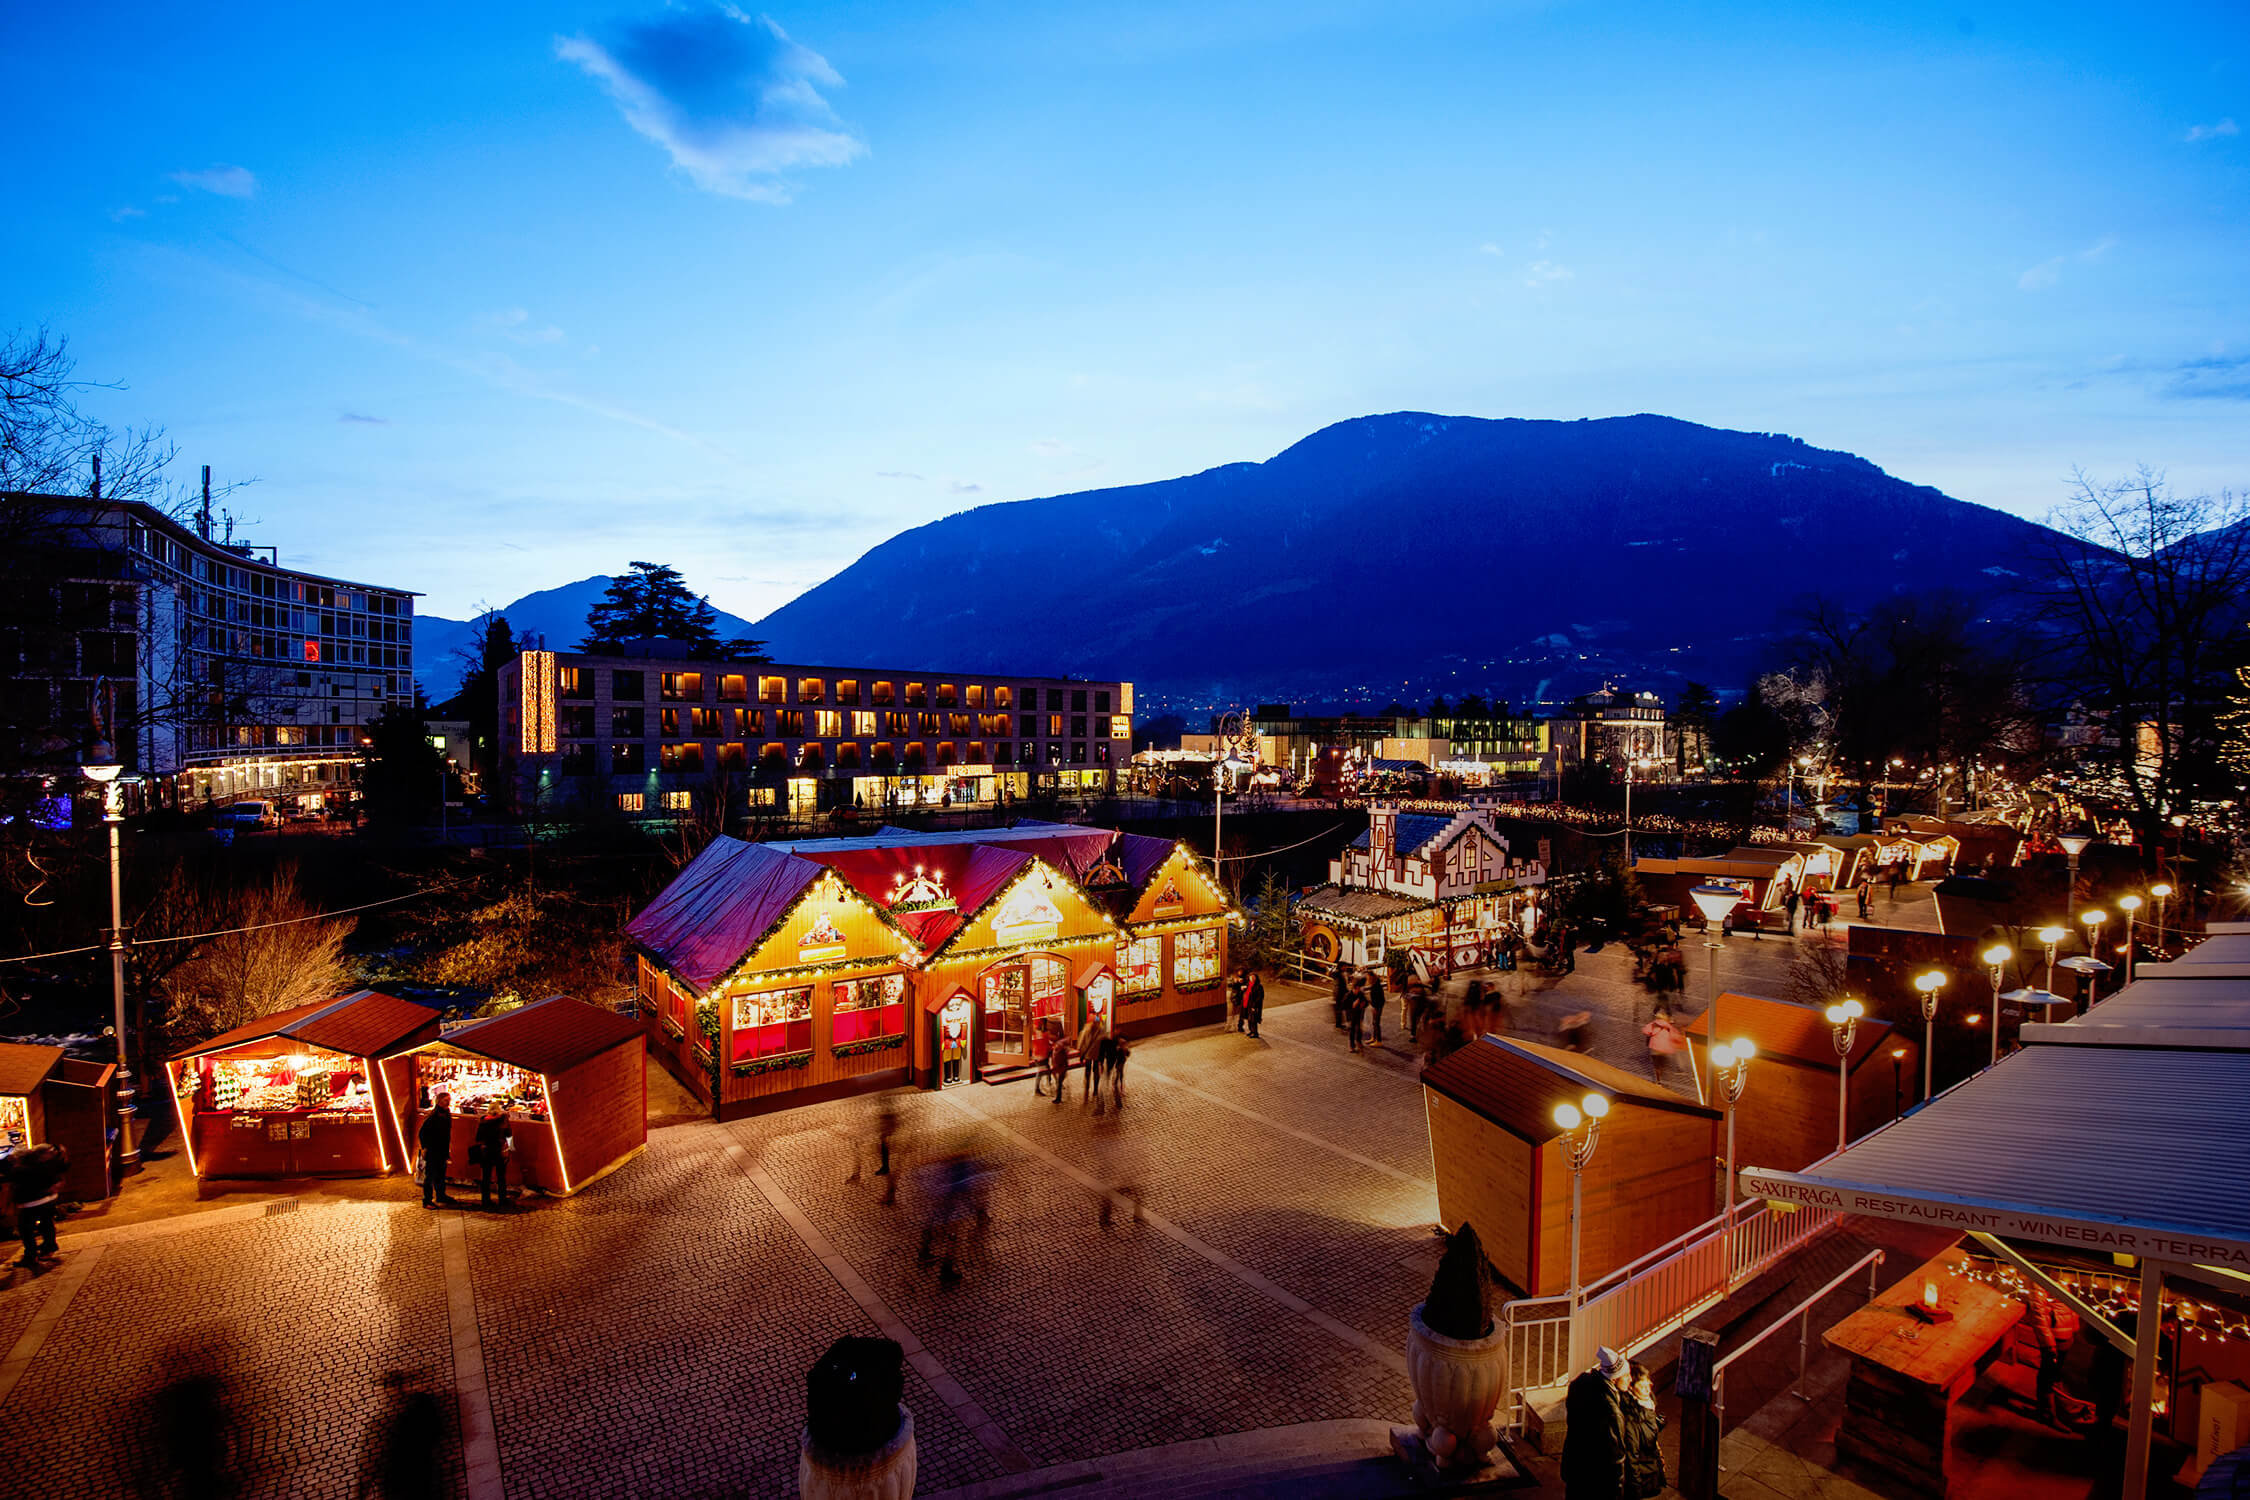 Historical center of Merano during wintertime with Christmas Market, P&H Family, Merano, Trentino, South Tyrol, Italy